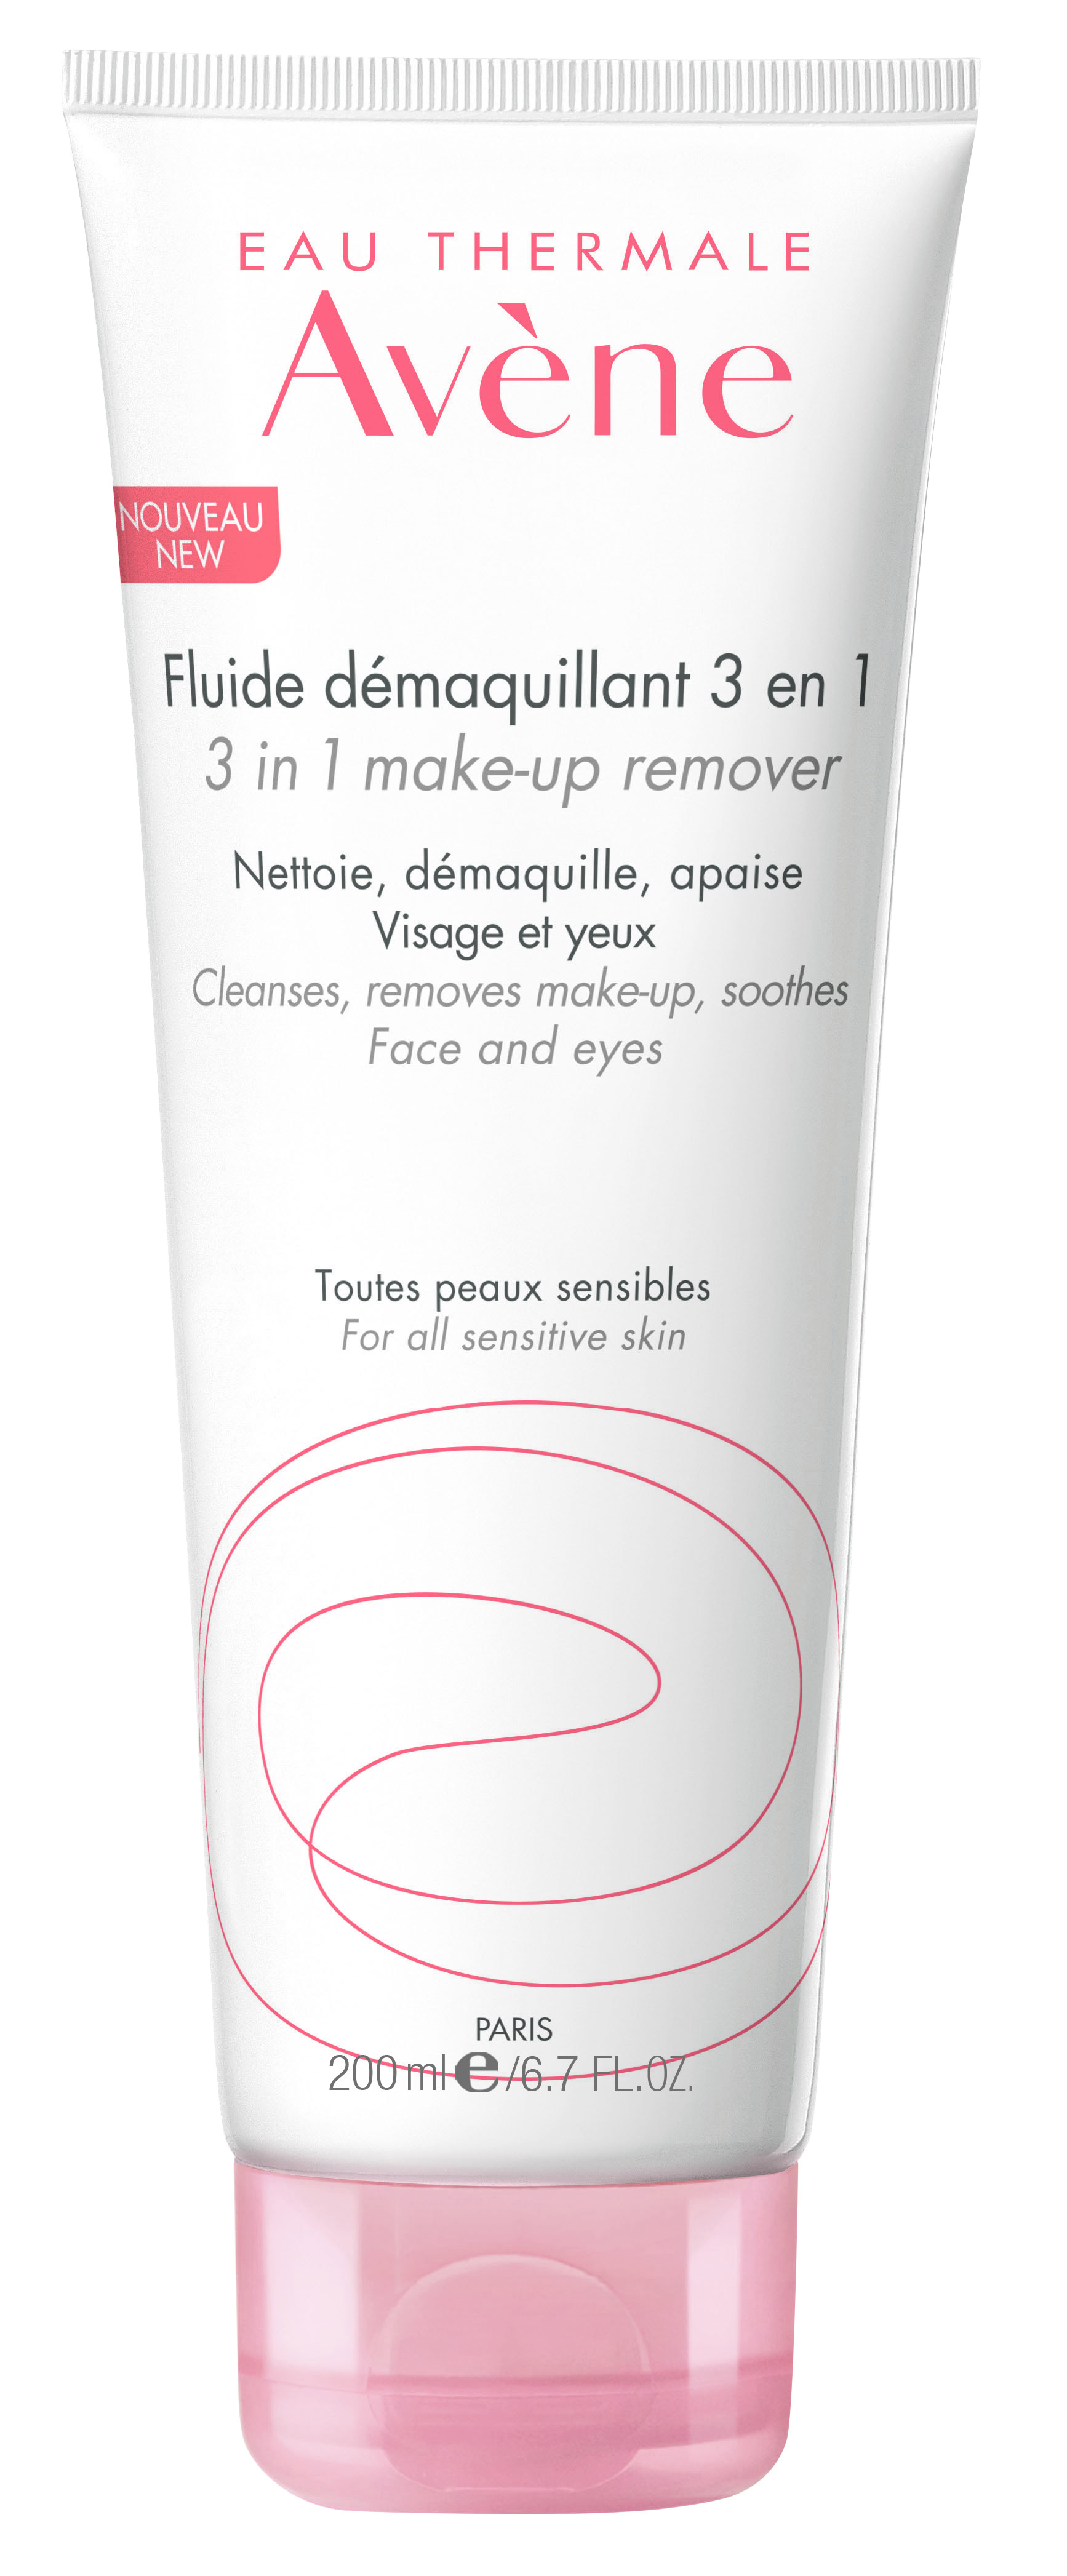 Avene 3 in 1, one of the best multitasking beauty products